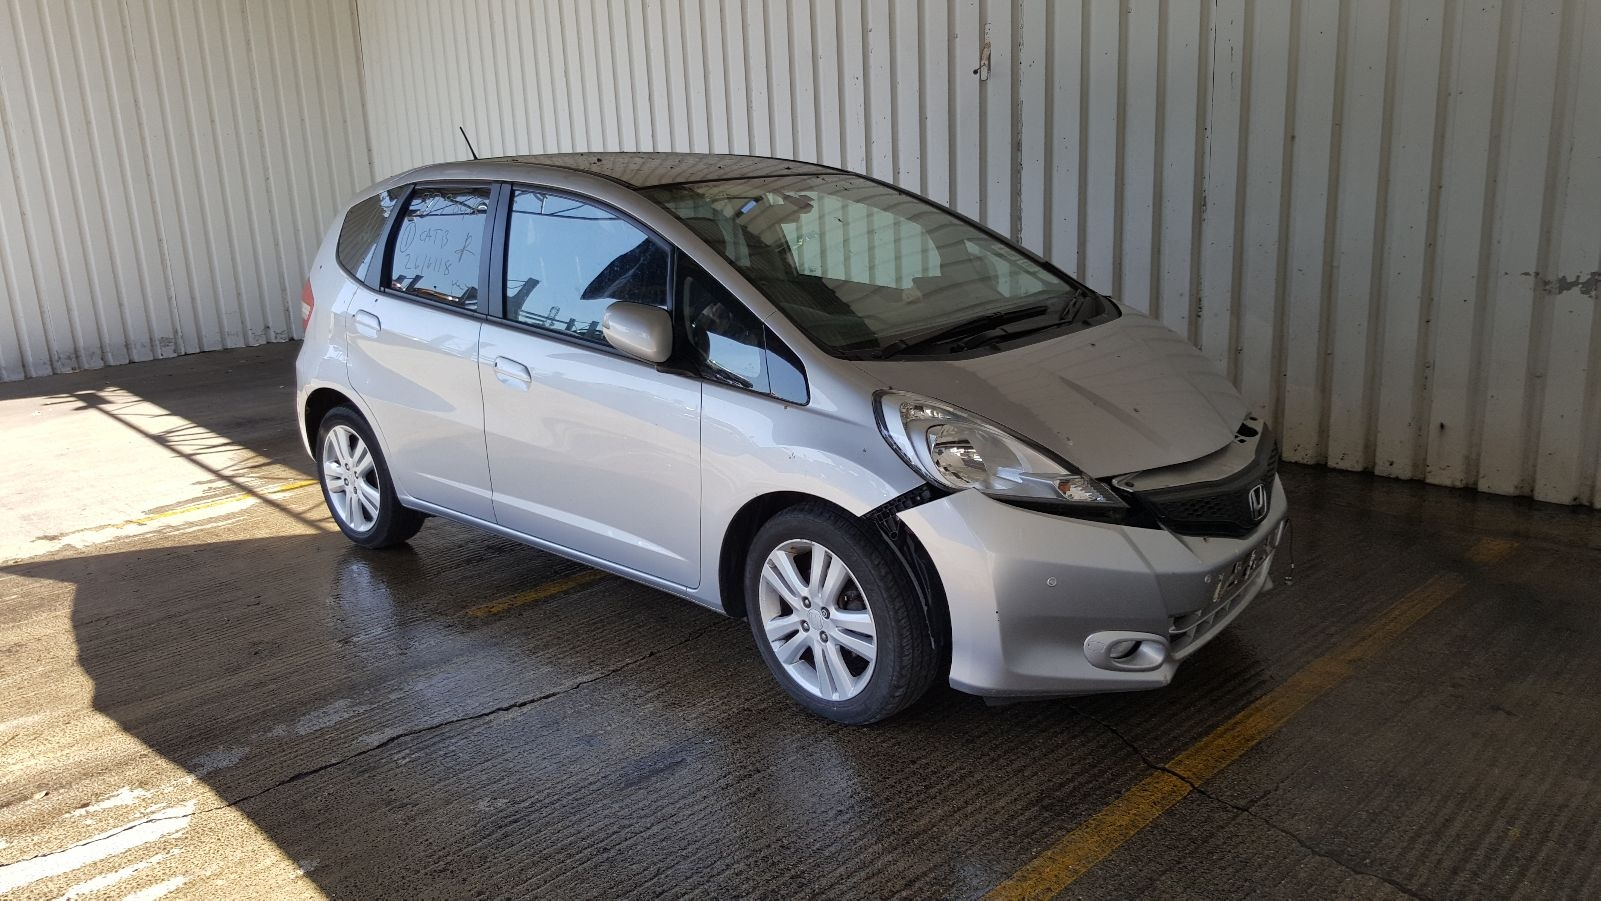 Image for a 2012 Honda Jazz 1.3 Petrol L13Z1 Engine